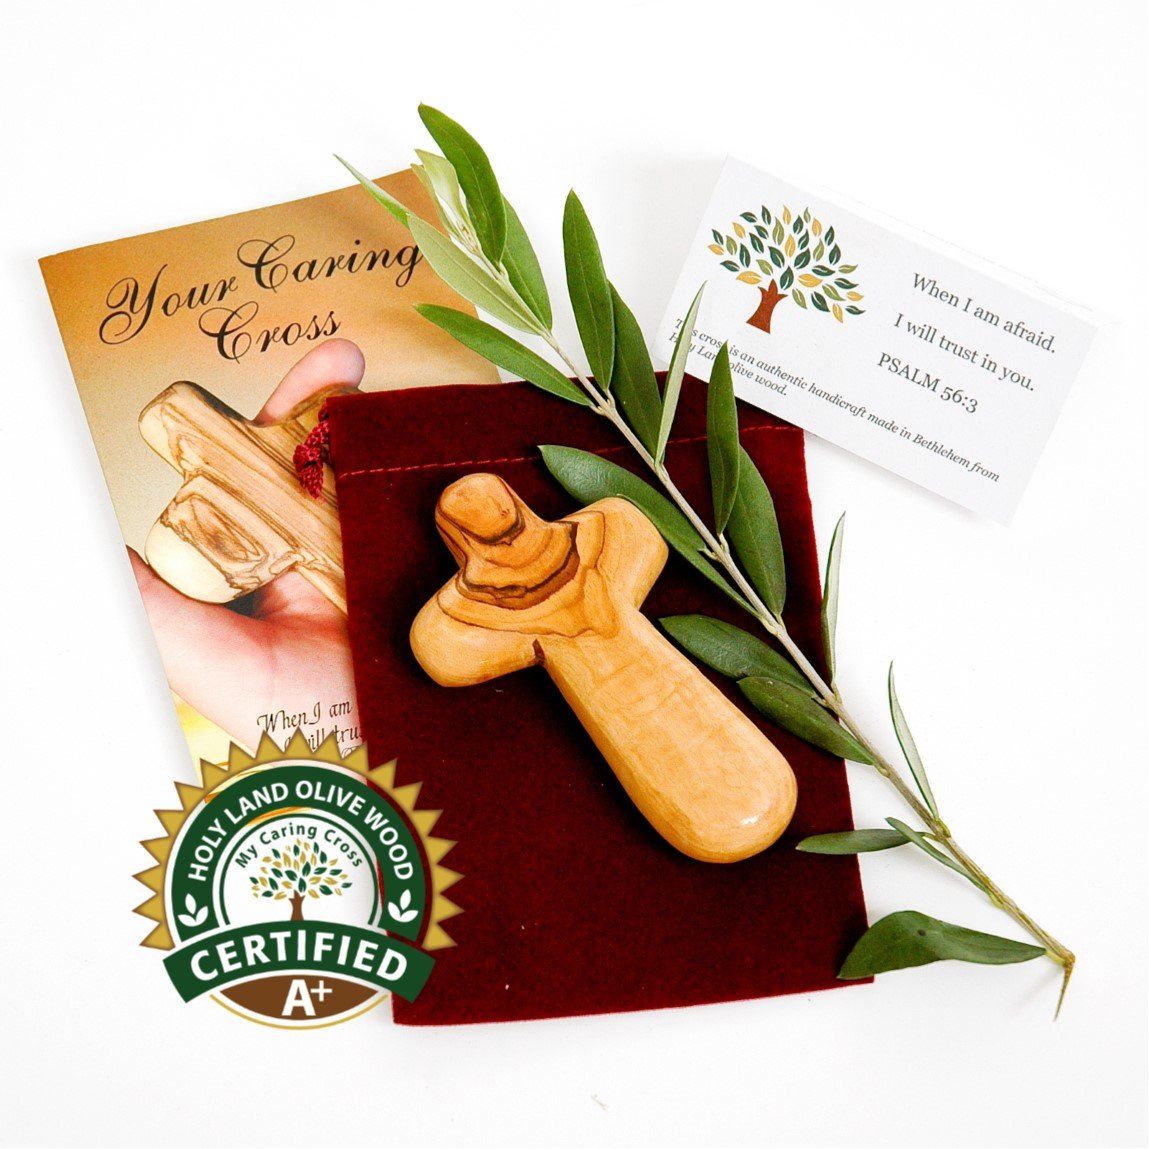 Olive wood Holding Cross comes with Velvet bag & Certificate Holy Land Imports BAB0336L_B